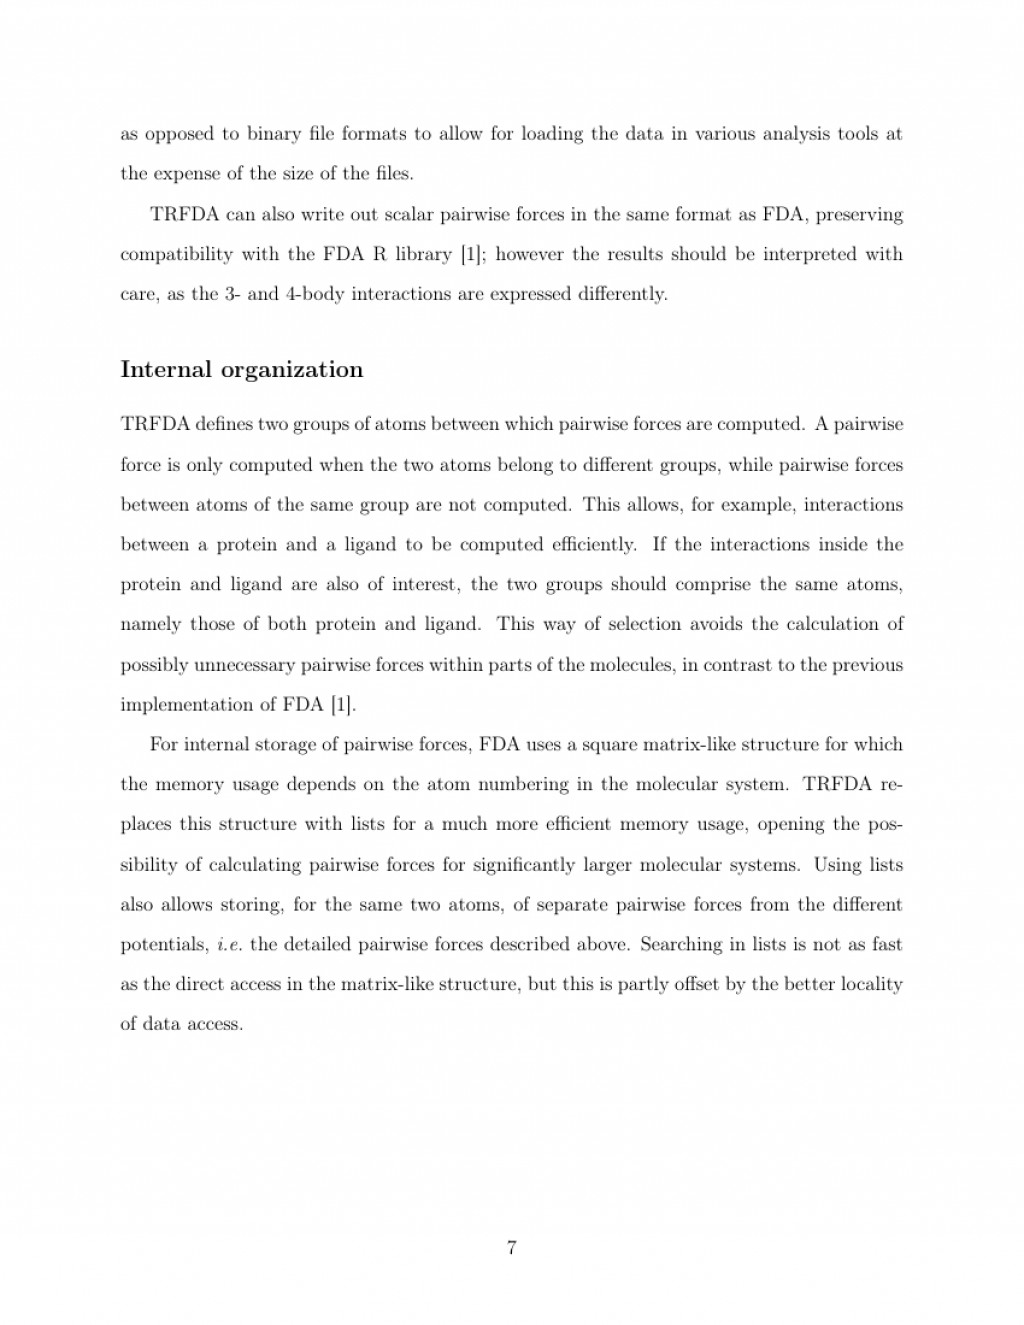 009 Output Research Paper Singular Formats Common Format Apa Template Outline Large